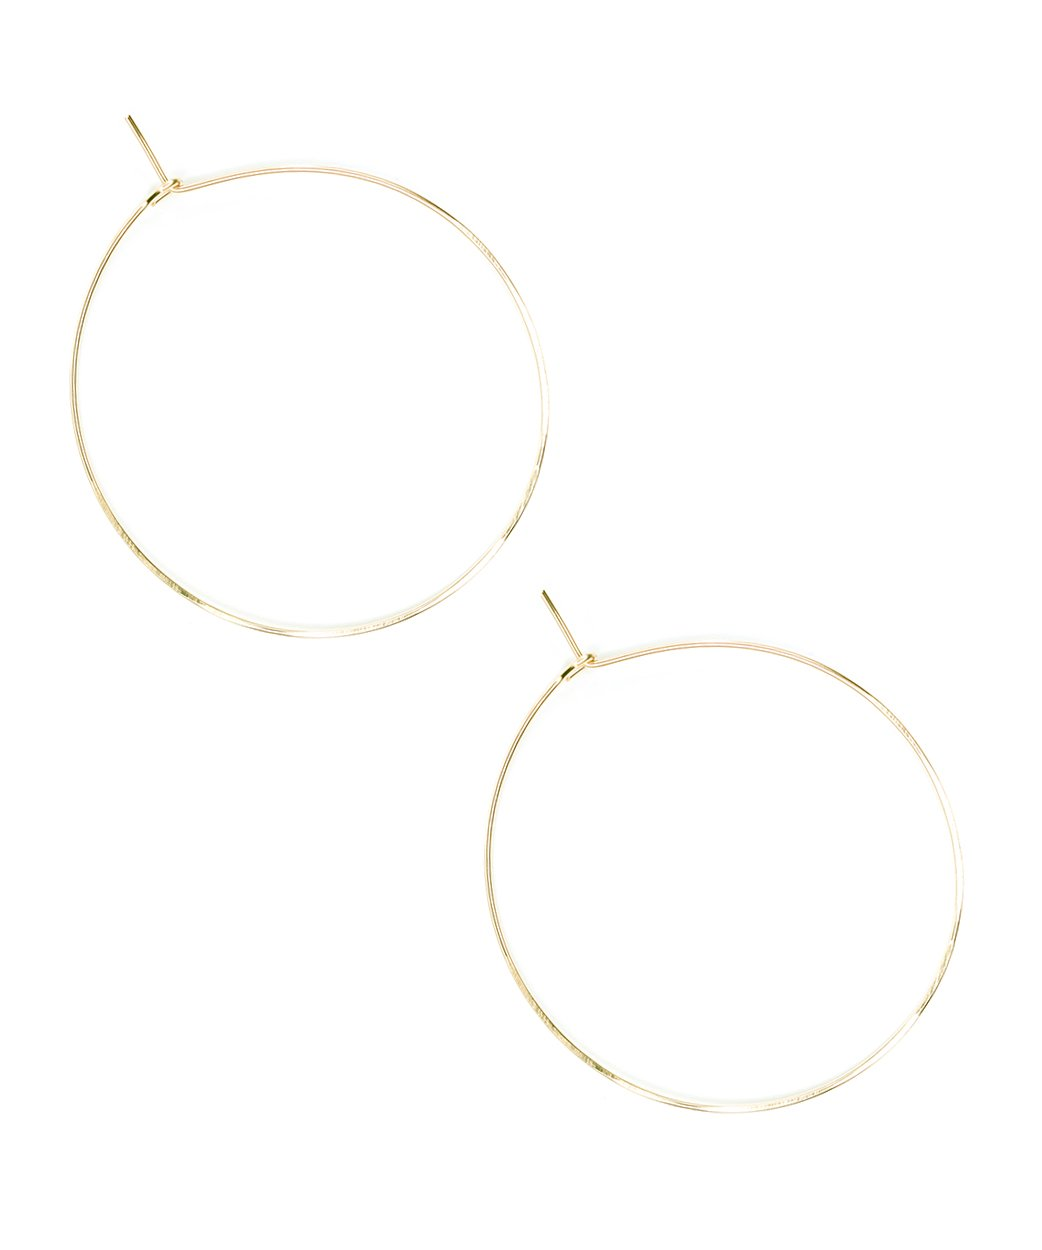 E Featherweight Hoop Large Gold 1 1